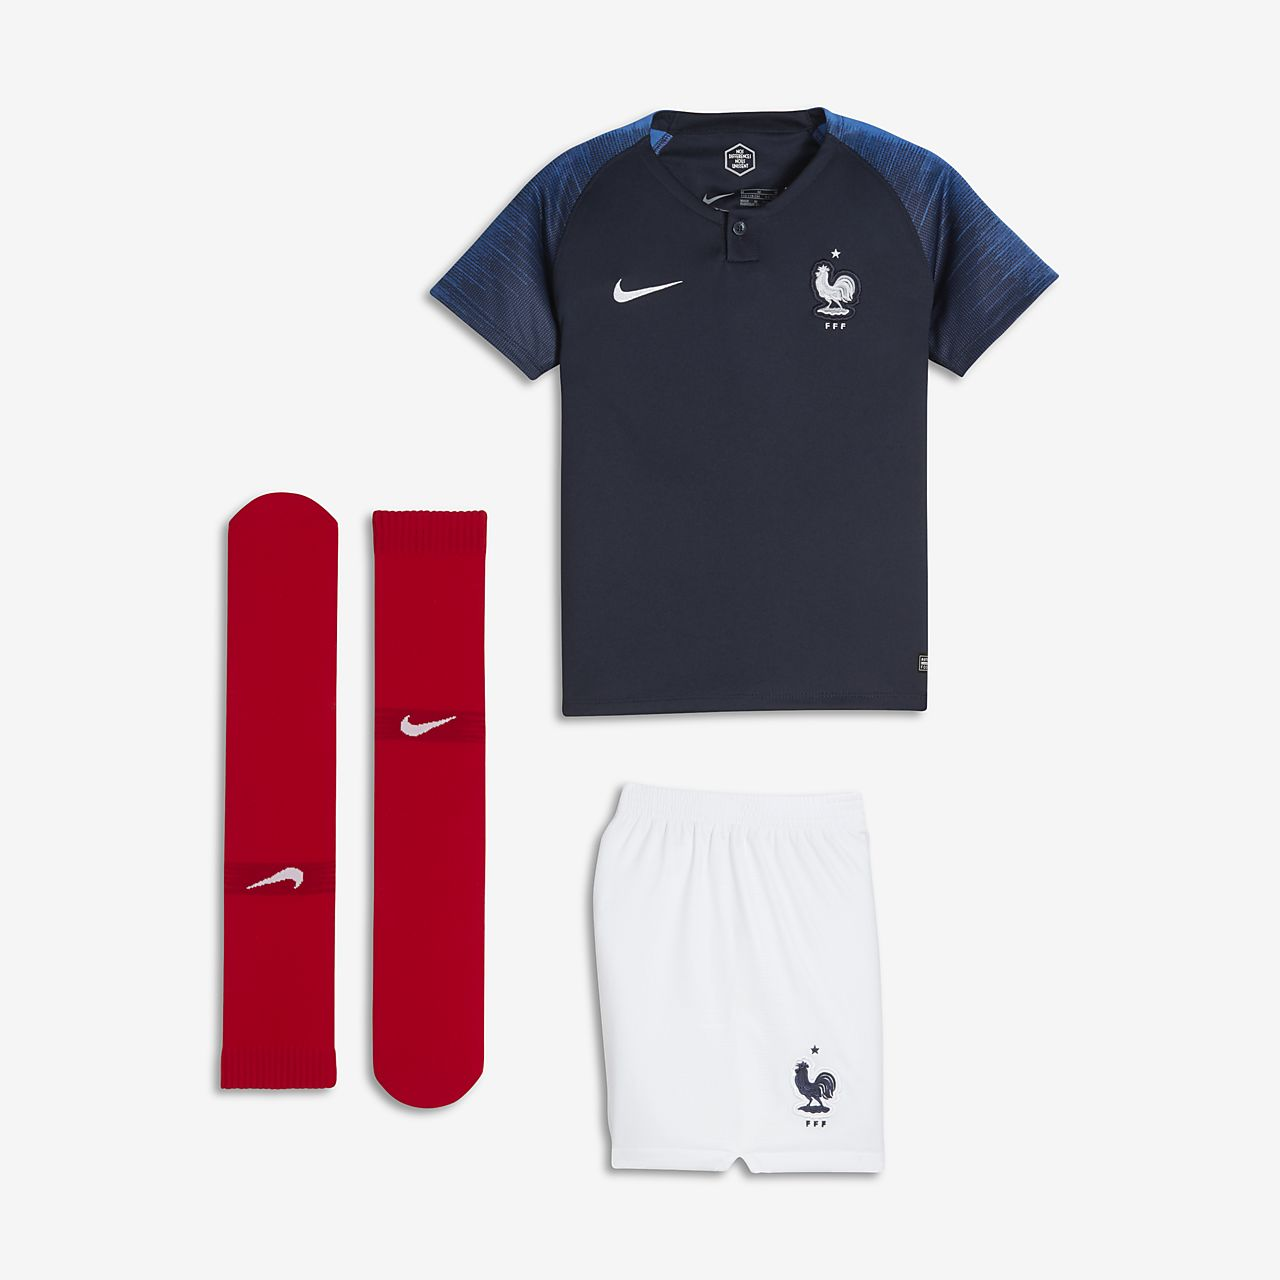 ca0db8e14 2018 FFF Stadium Home Younger Kids  Football Kit. Nike.com PT